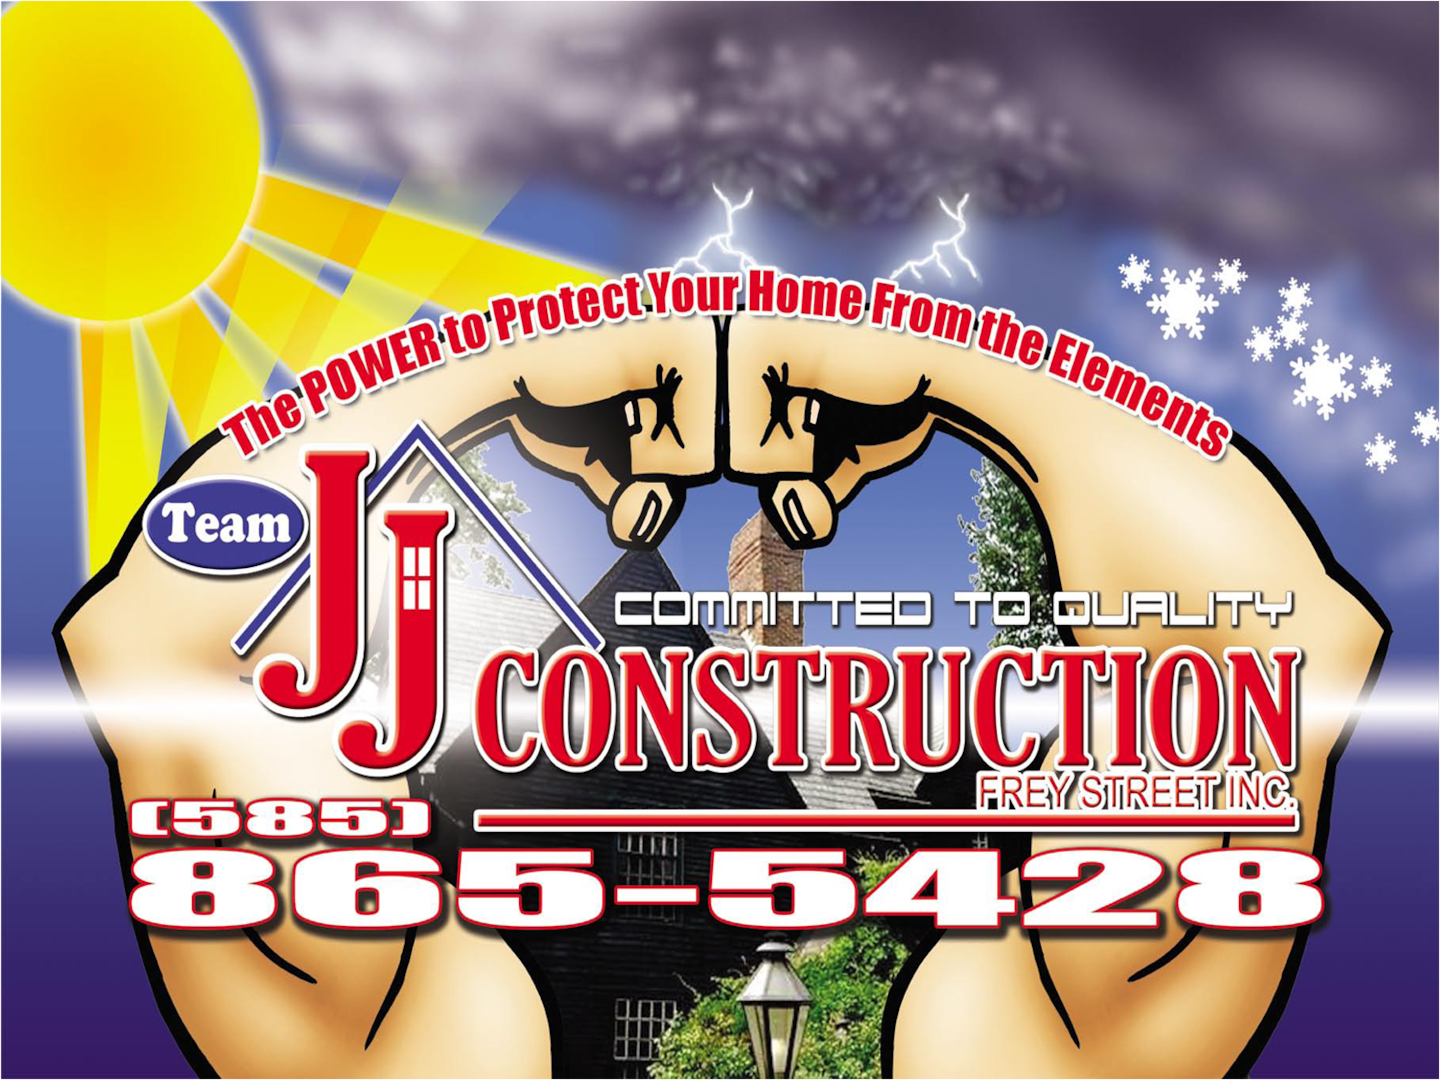 JJ Construction